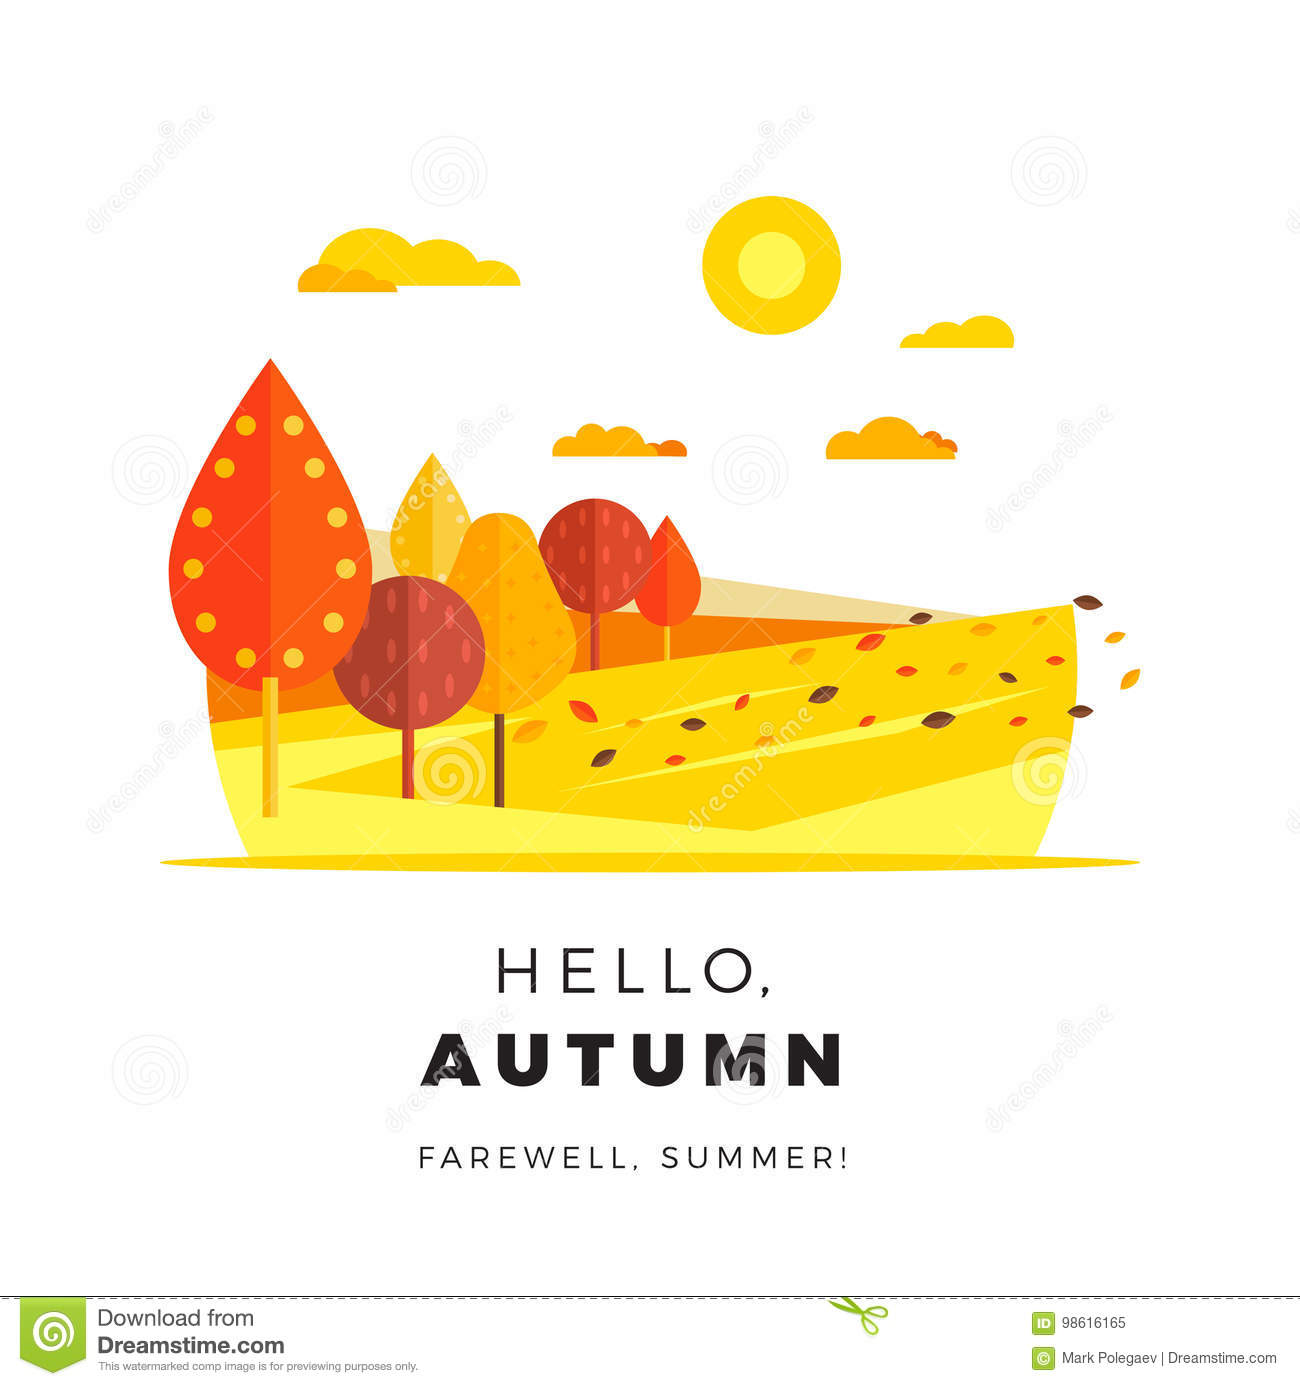 Hello Autumn Promotion Web Banner With Greeting Text. Promo Fall Season  Discount Layout With Rural Landscape. Vector Seasonal Discount Template  Design.